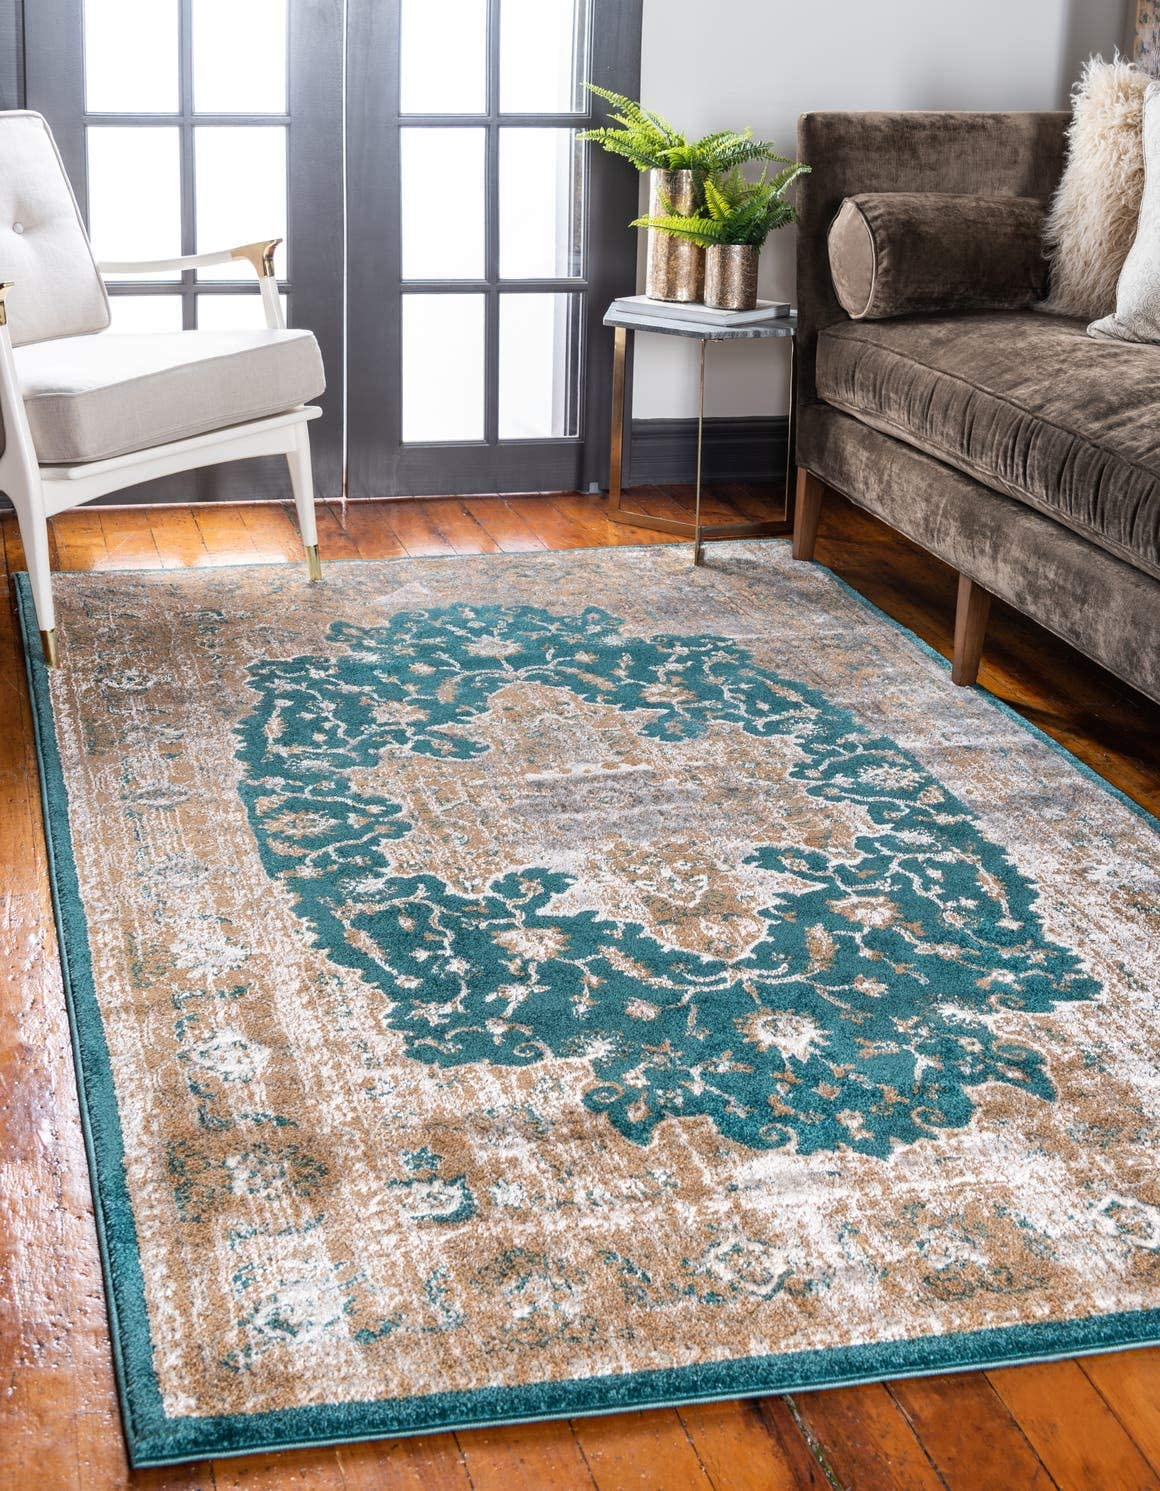 Unique Loom Aurora Collection Vintage Medallion Traditional Border Teal Area Rug 4 0 x 6 0